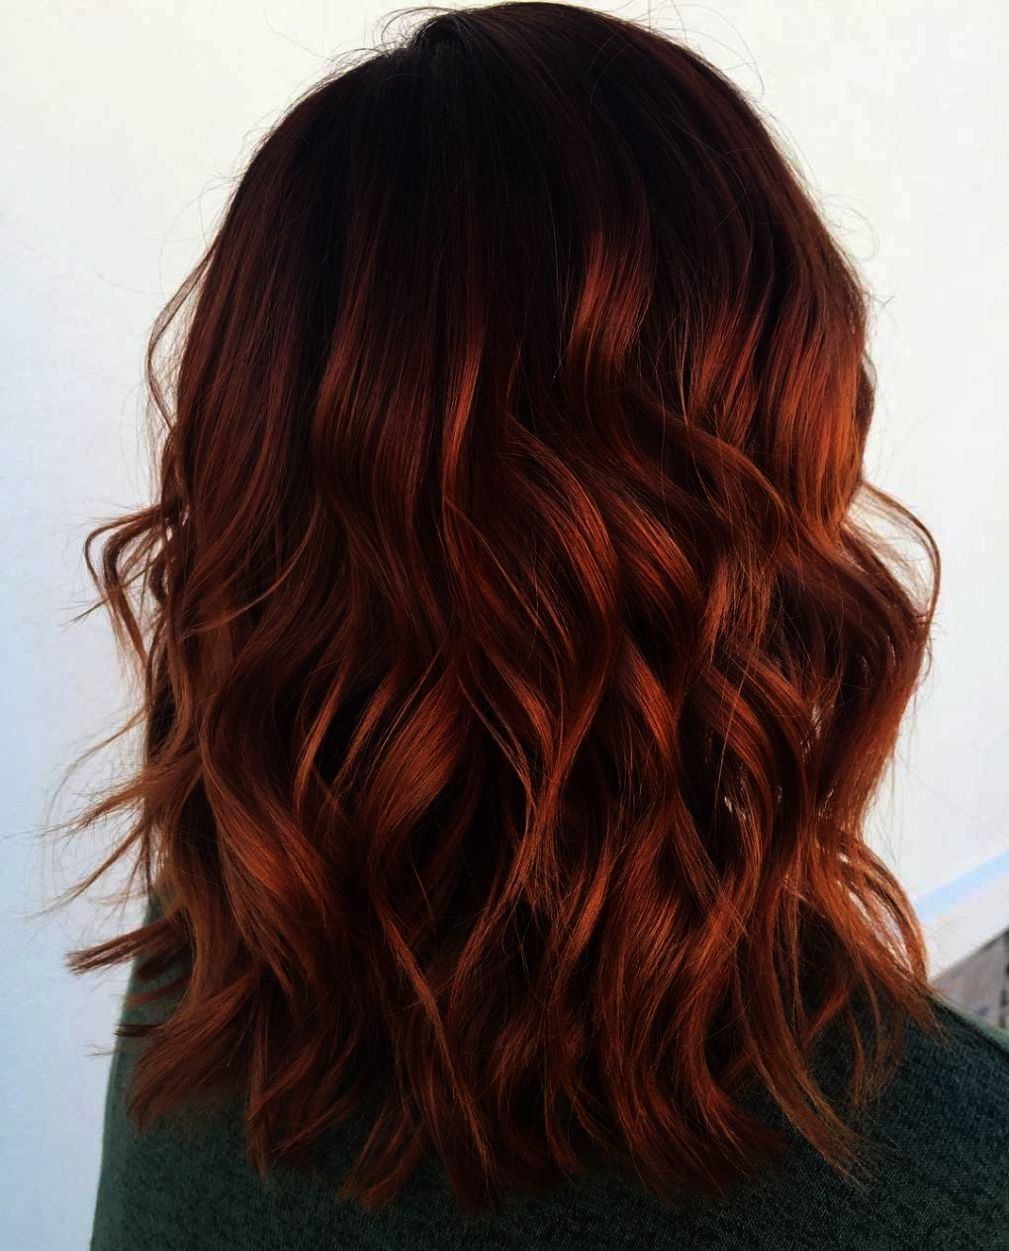 Hair Salon Near Me Phoenix Across Hair Salon Near Me That Does Sew Ins Lest Hairstyles Pokemon Sun Via Ha Ginger Hair Color Light Auburn Hair Hair Color Auburn